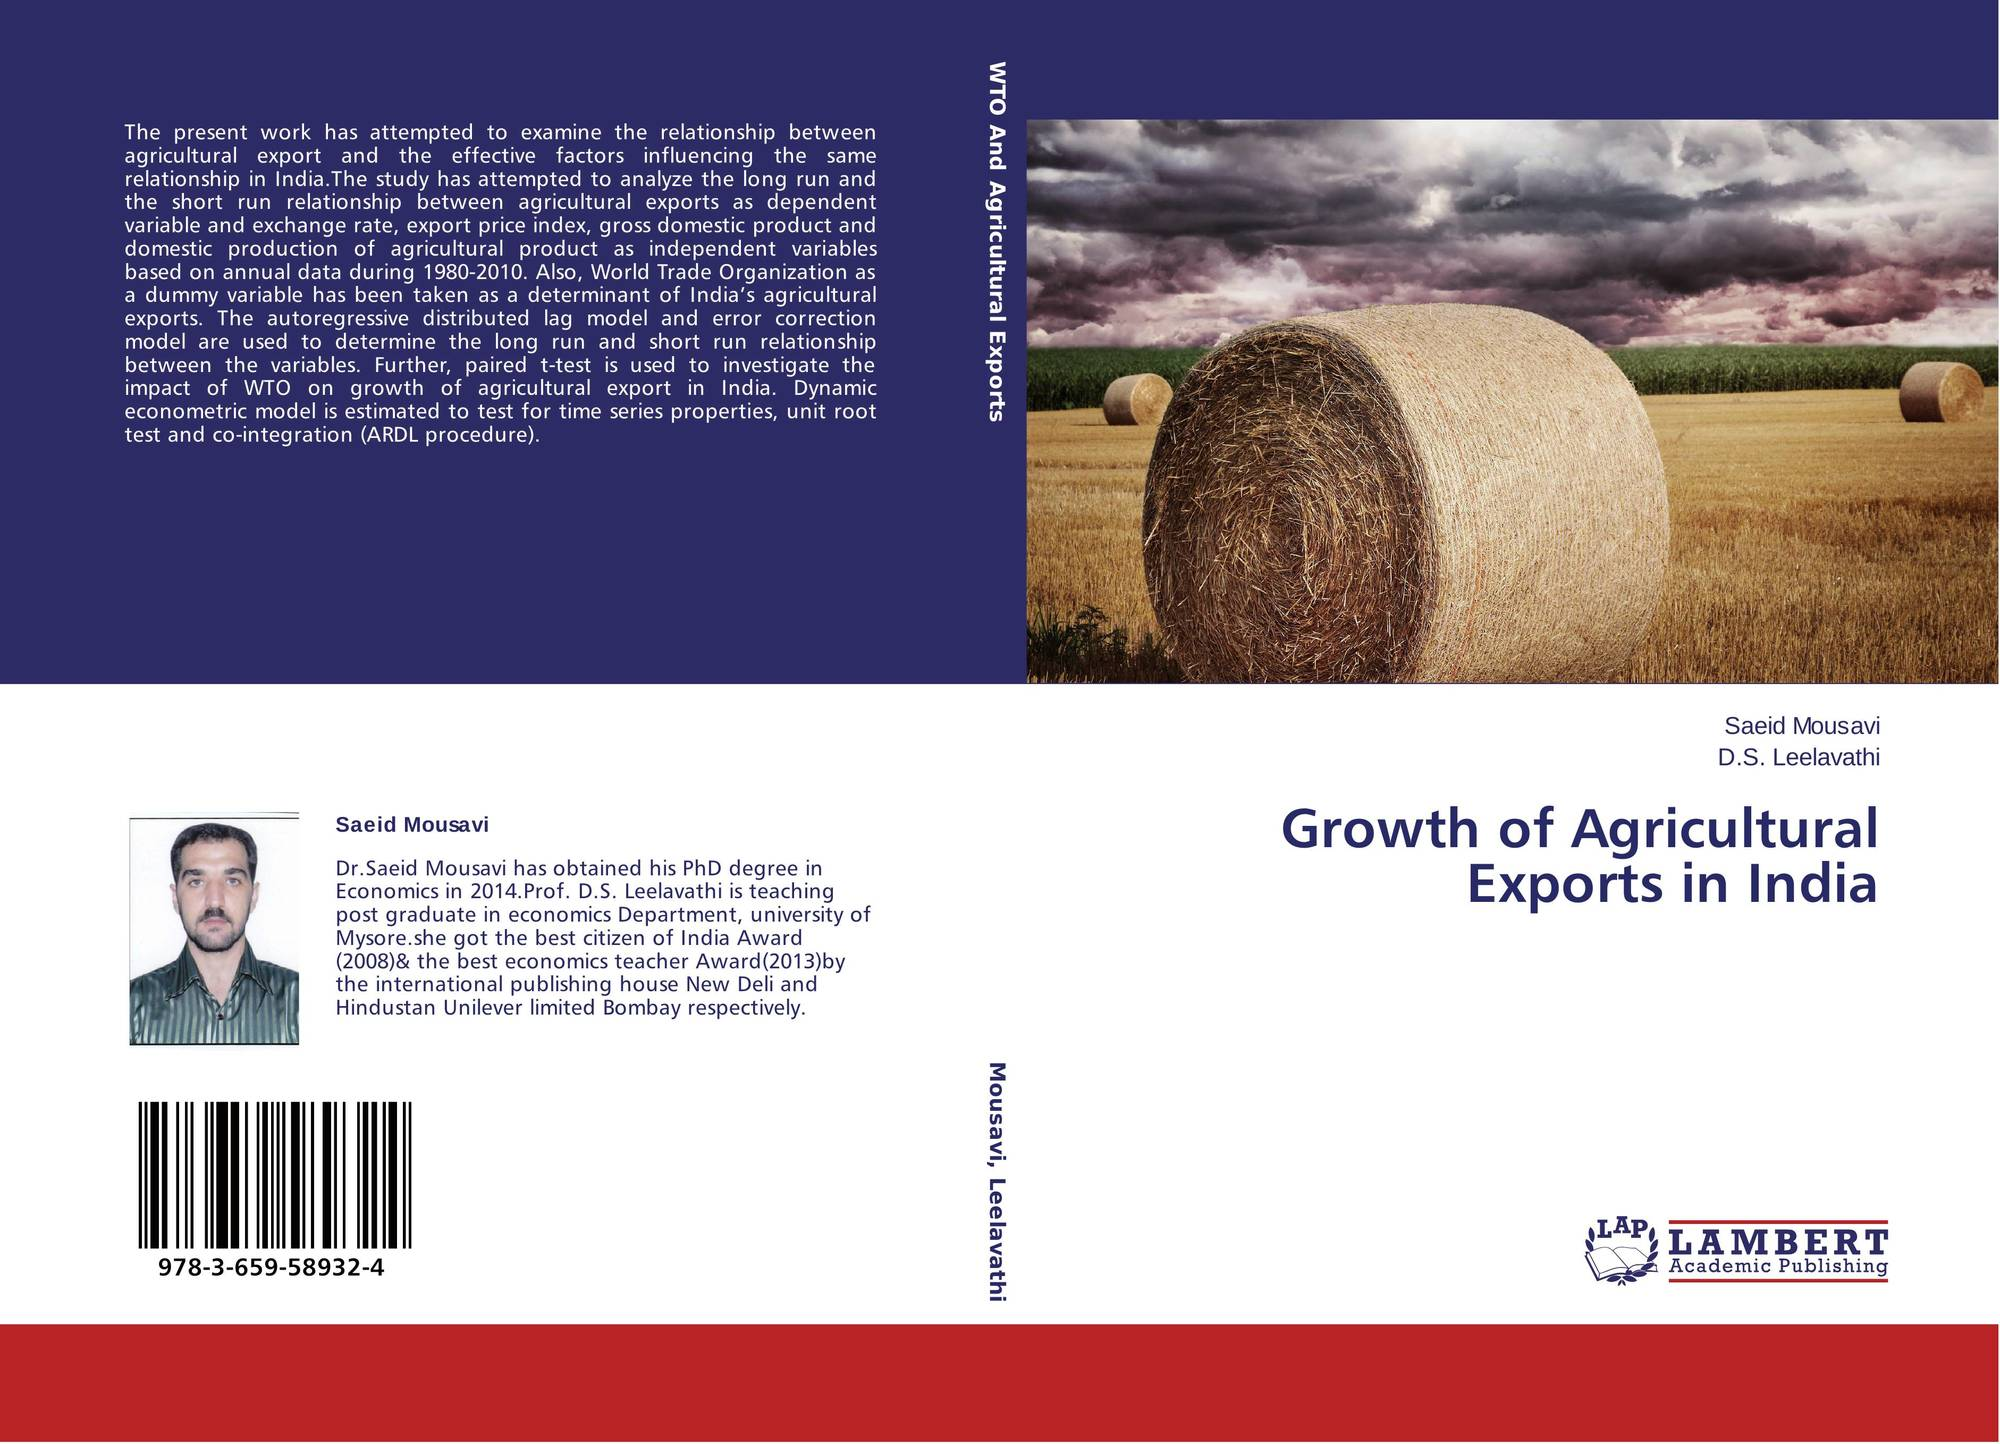 the impact of agricultural growth on The environmental impact of agriculture is the effect that different farming practices have on the ecosystems around them, and how those effects can be traced back to those practices the environmental impact of agriculture varies based on the wide variety of agricultural practices employed around the world.